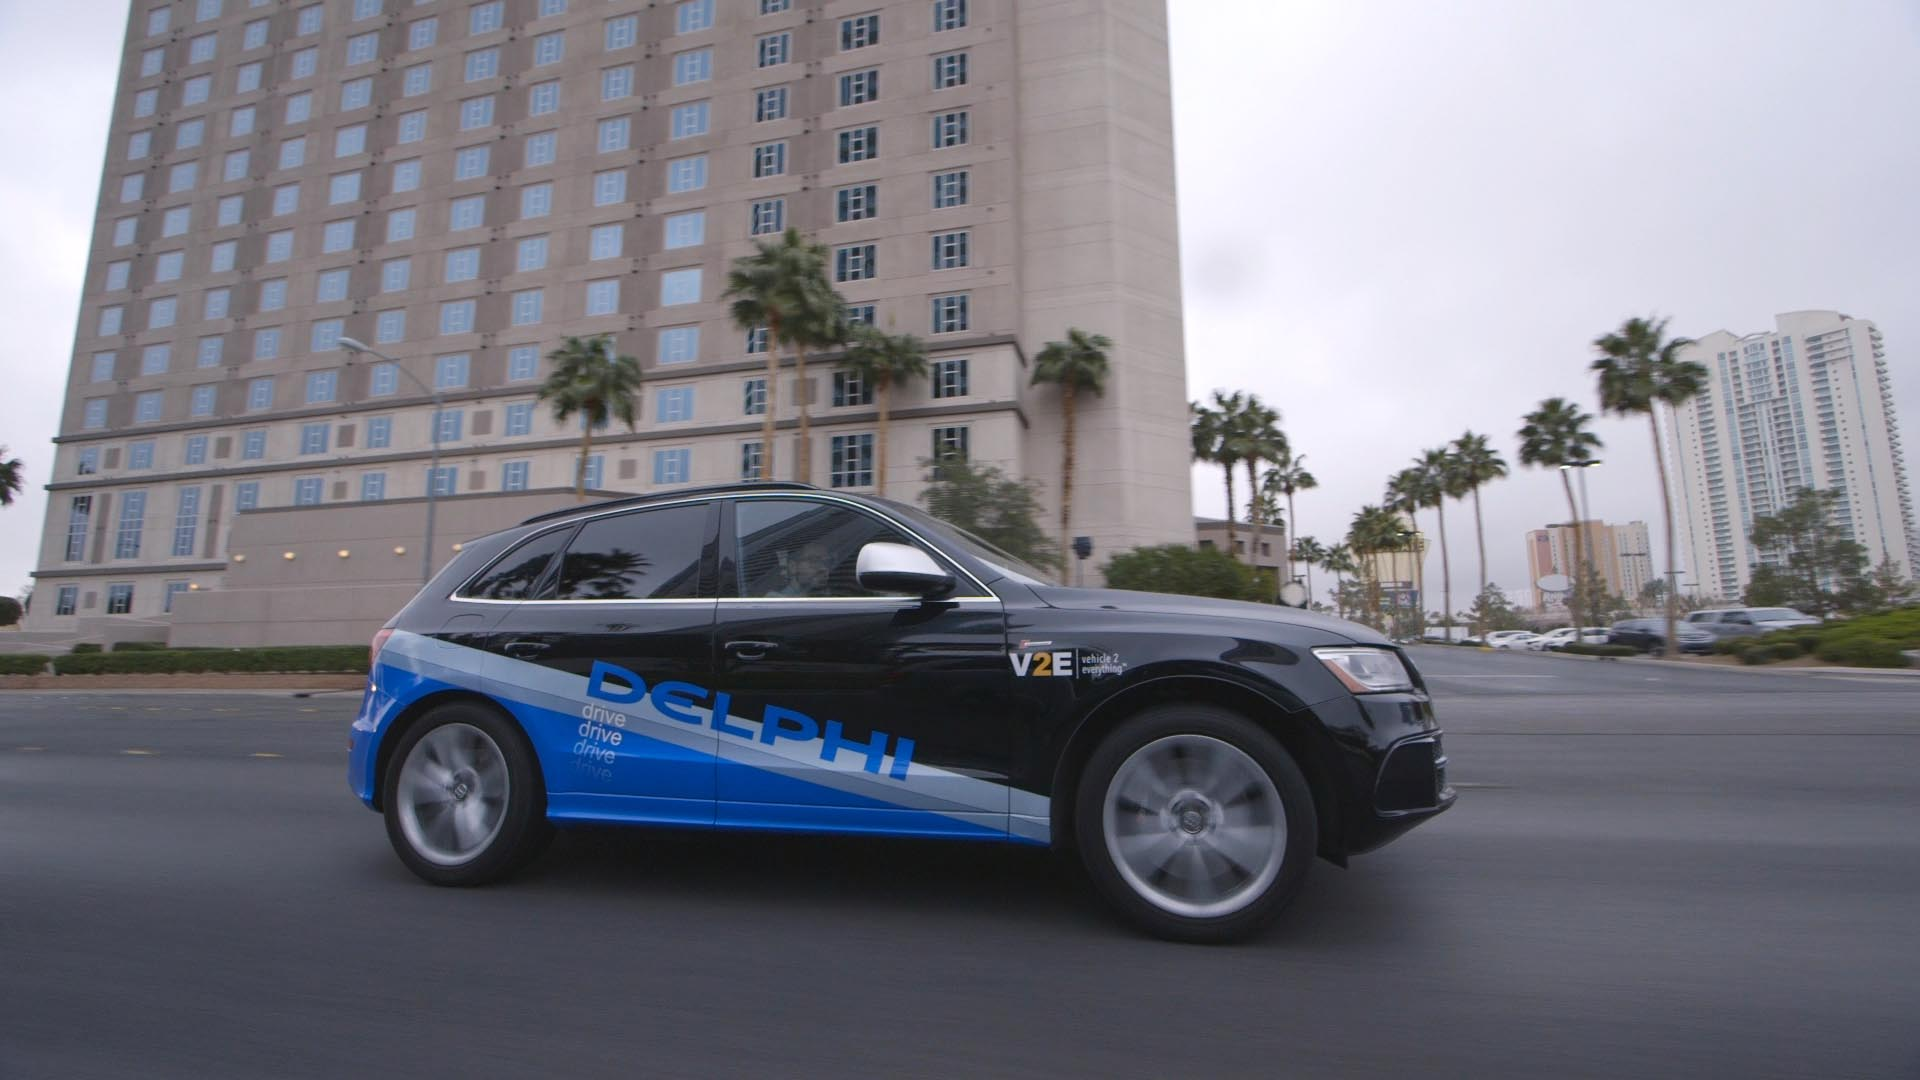 Delphi acquires self-driving start-up nuTonomy for US$450M